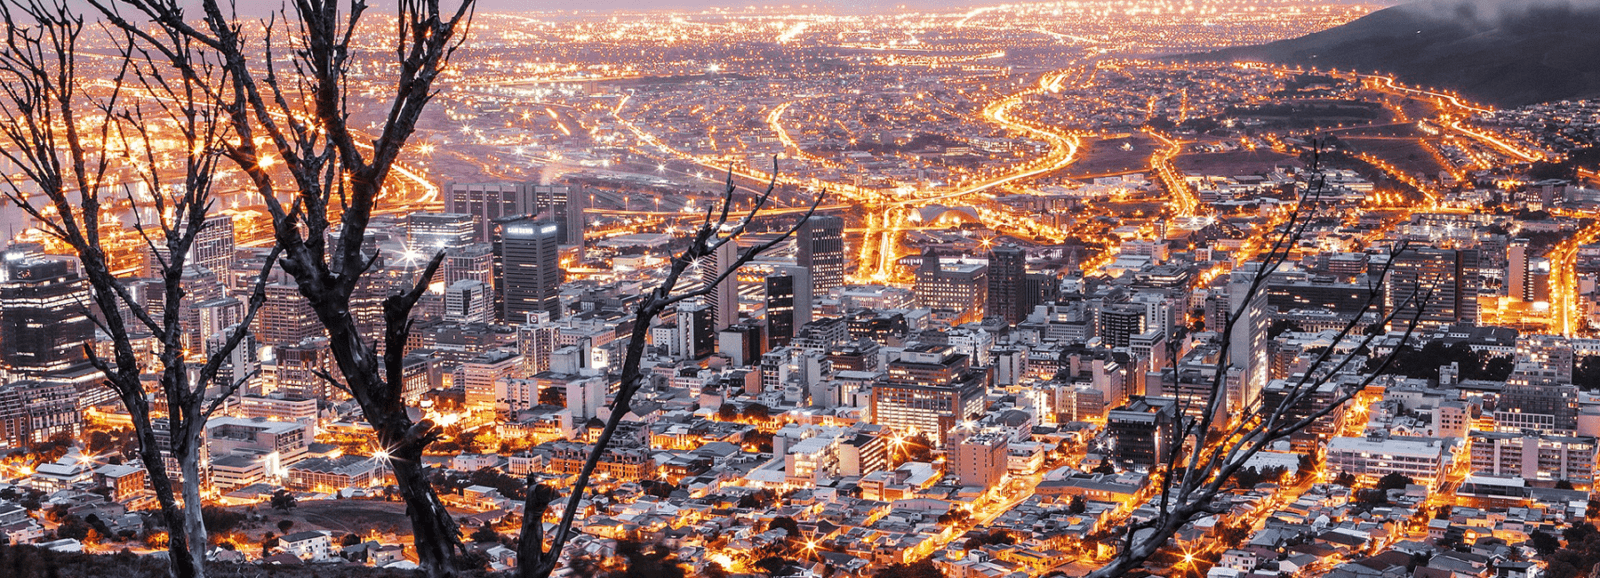 Cape Town, South Africa, by night